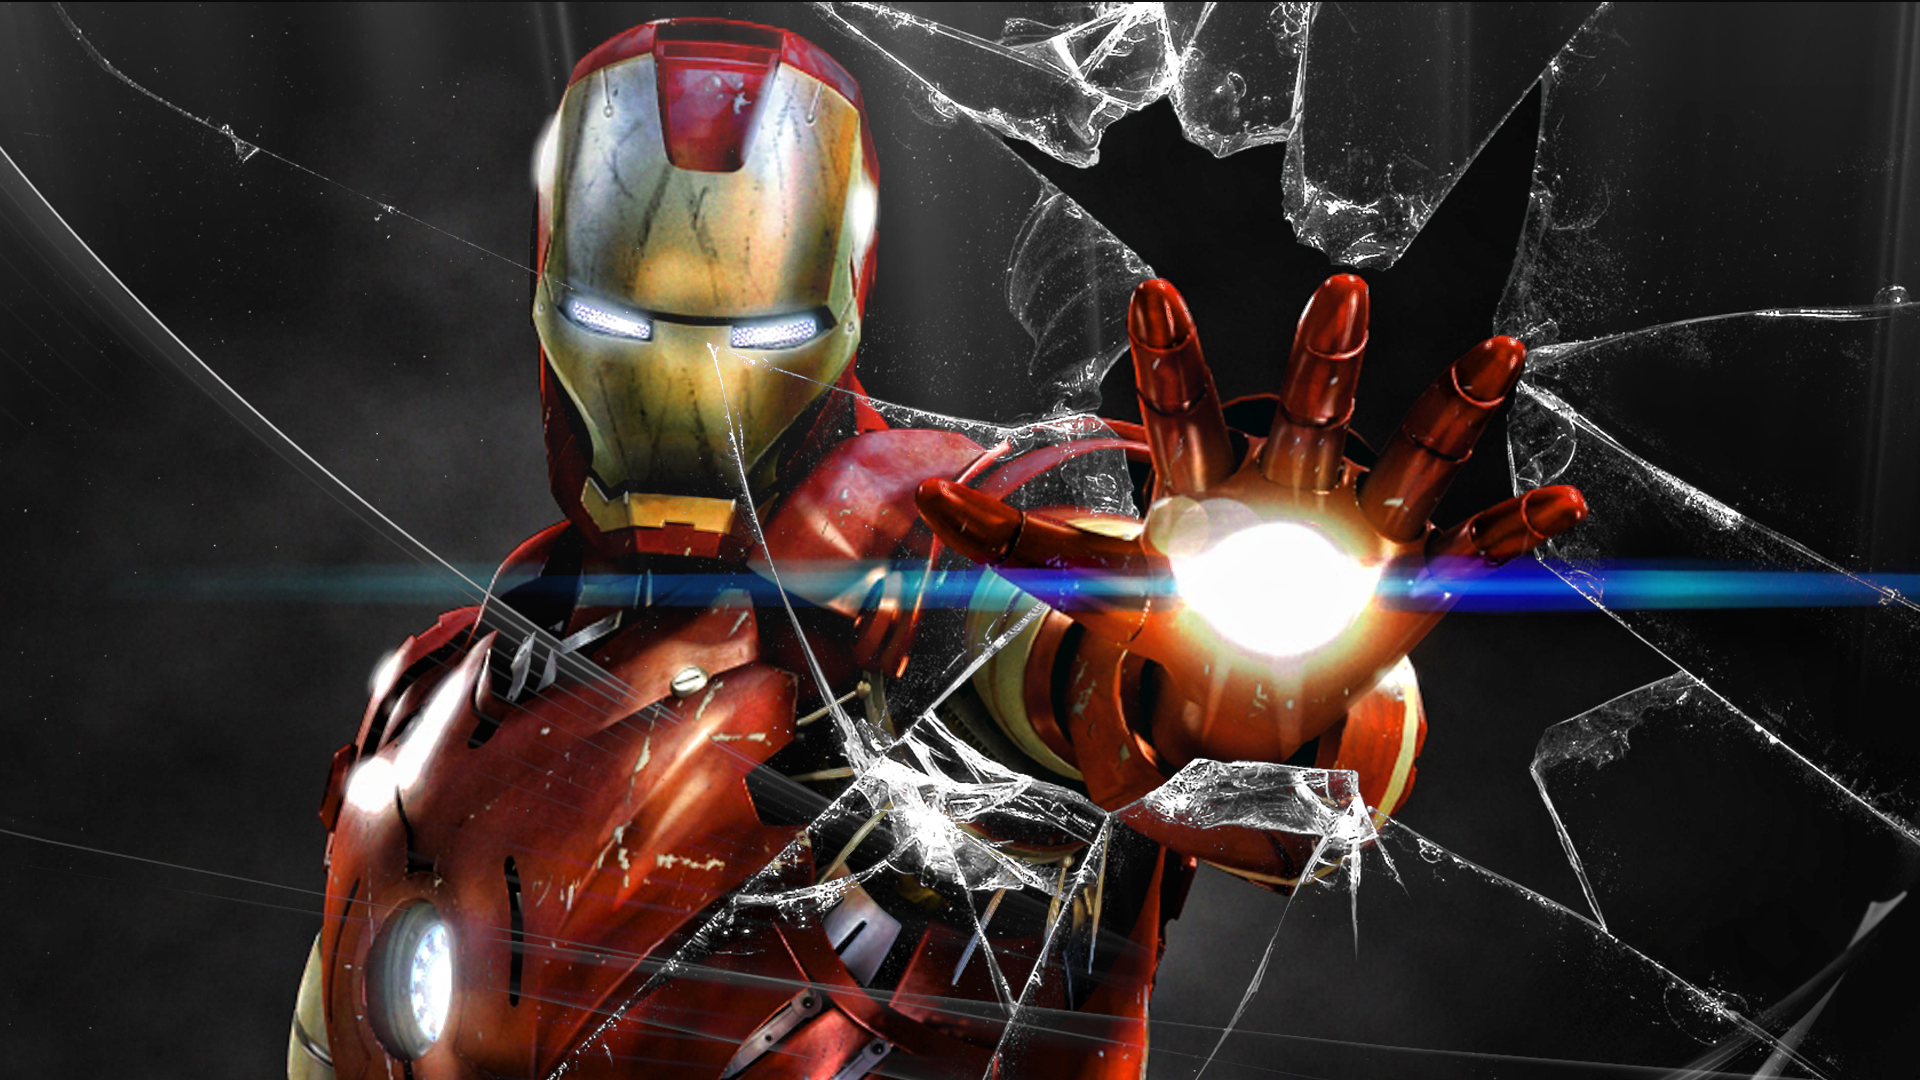 Iron man desktop wallpaper 50467 1920x1080 px for Wallpaper hd home movie